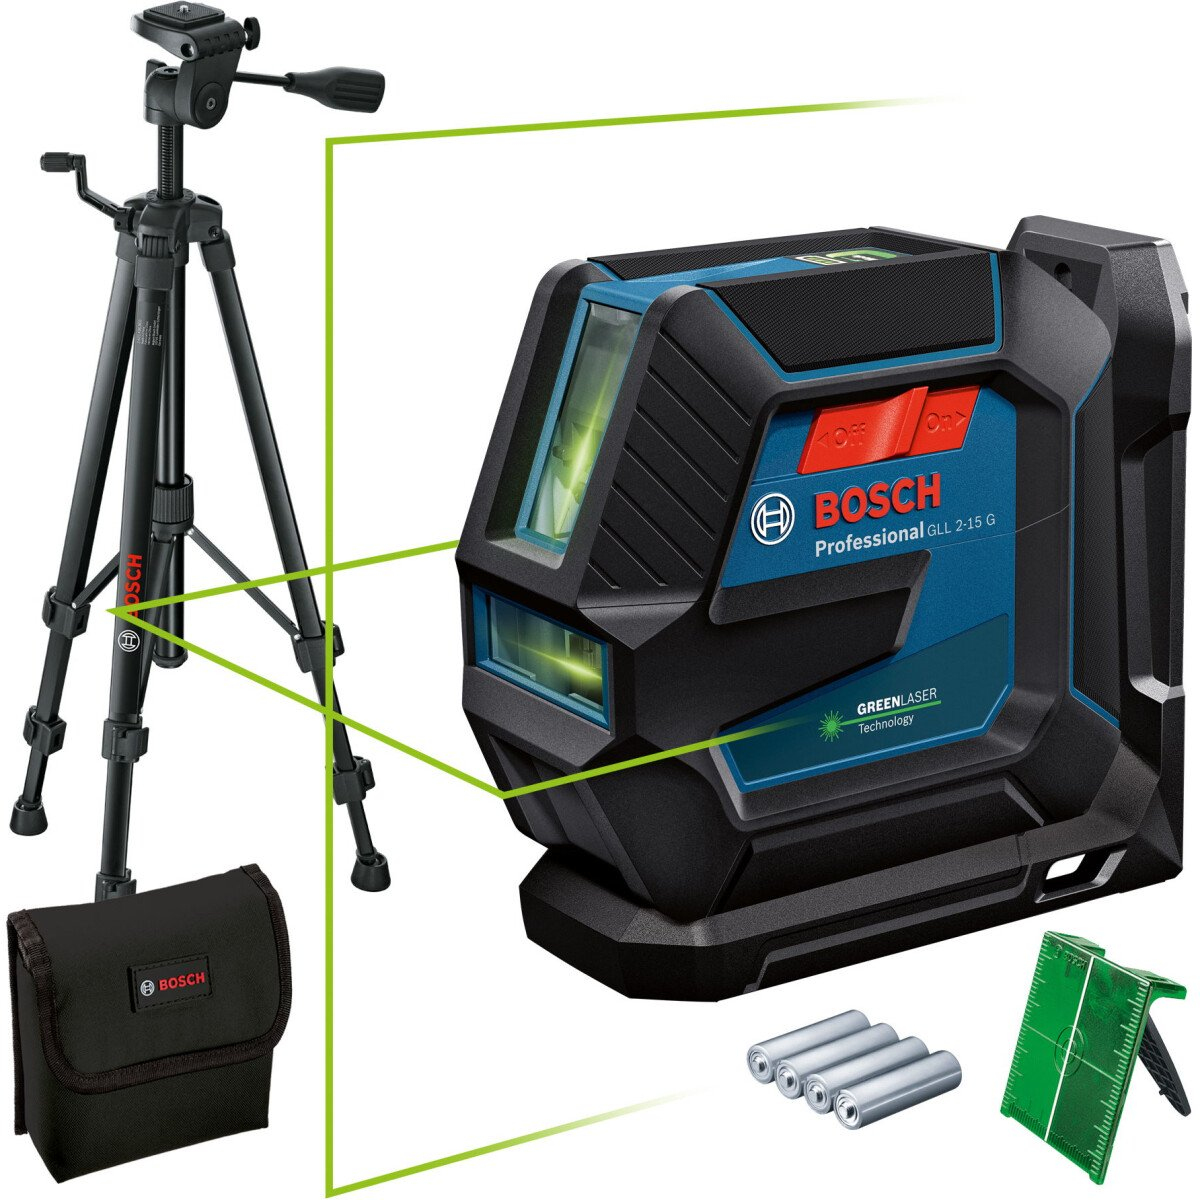 Bosch GLL 2-15 G + LB 10 + BT 15 Greem Beam Line Laser 15m With Target Plate, Tripod and Pouch